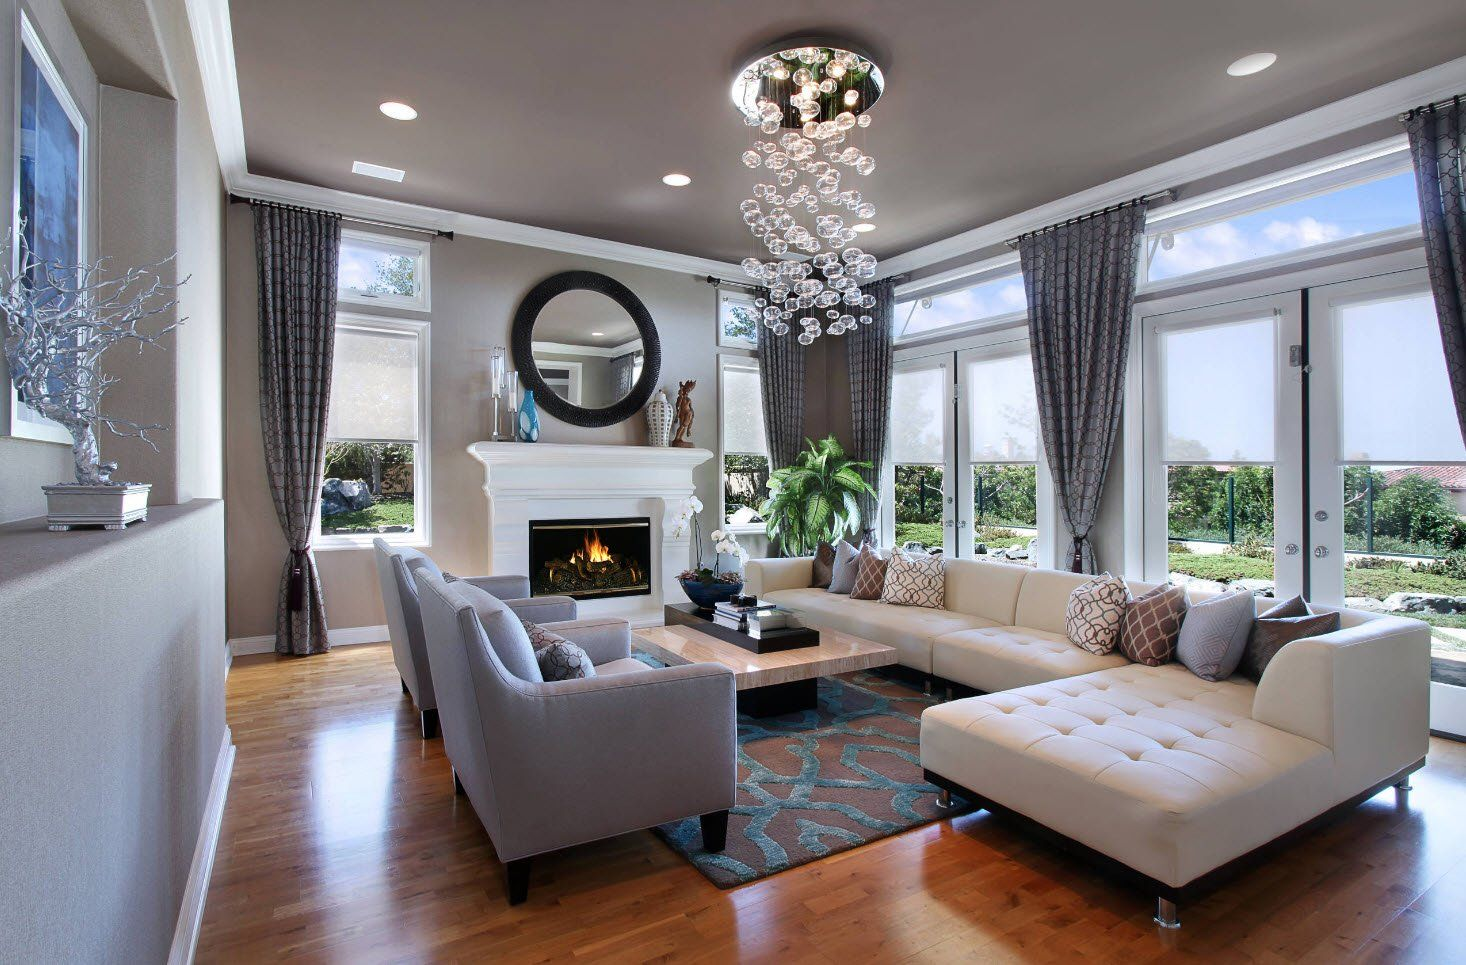 150 Square Feet Living Room Best Arrangement Ideas. Gray designed room with crystal chandelier